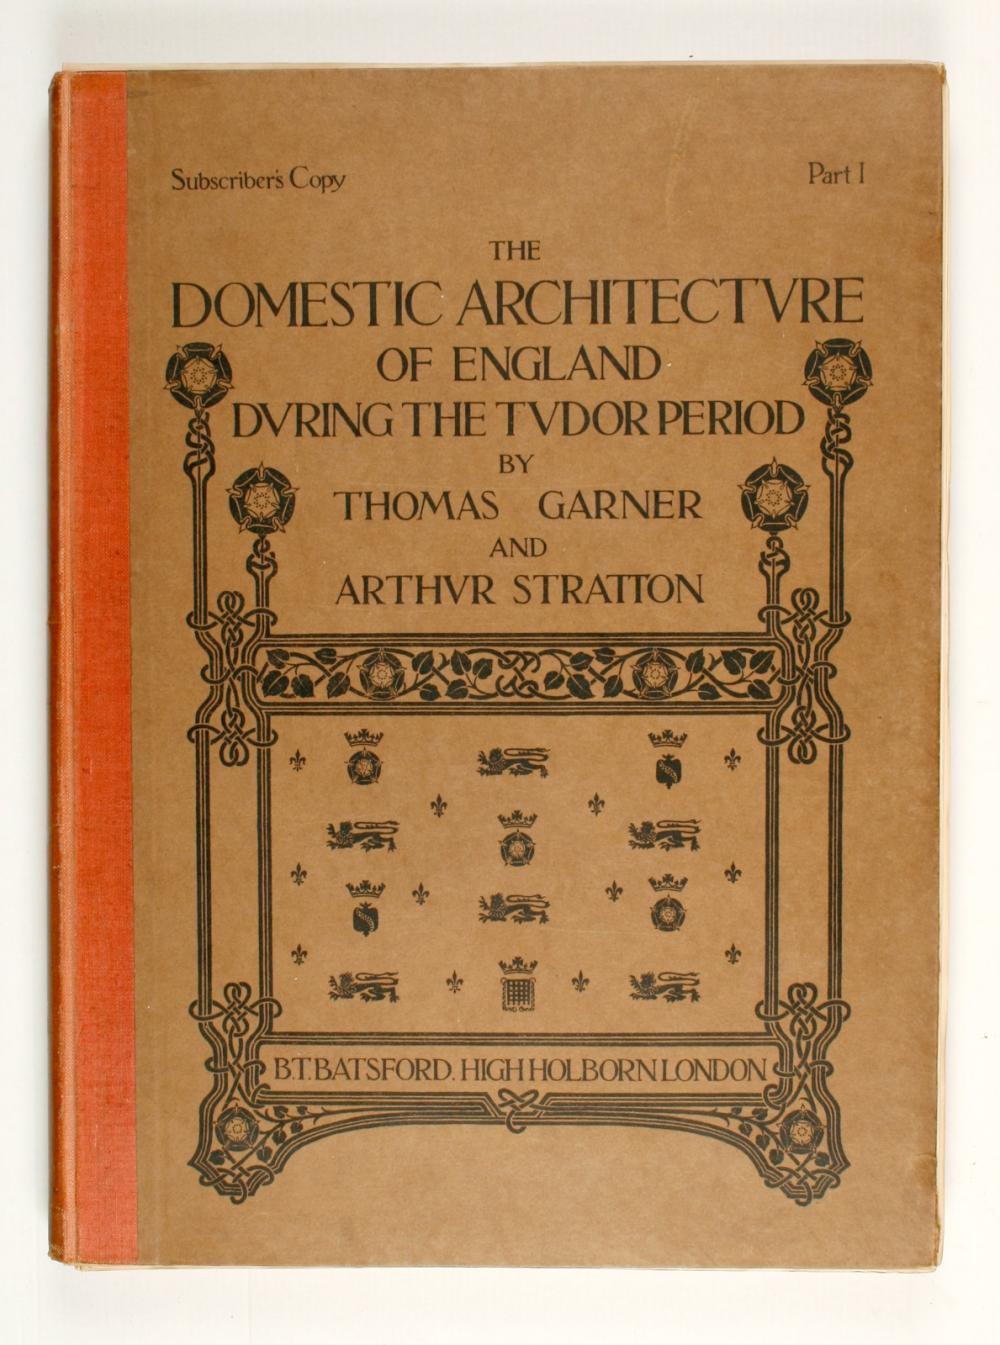 GARNER, Thomas - STRATTON, Arthur – The Domestic Architecture of England During the Tudor Period; Illustrated in a Series of Photographs & Measured Drawings of Country Houses & Other Buildings With Historical and Descriptive Text